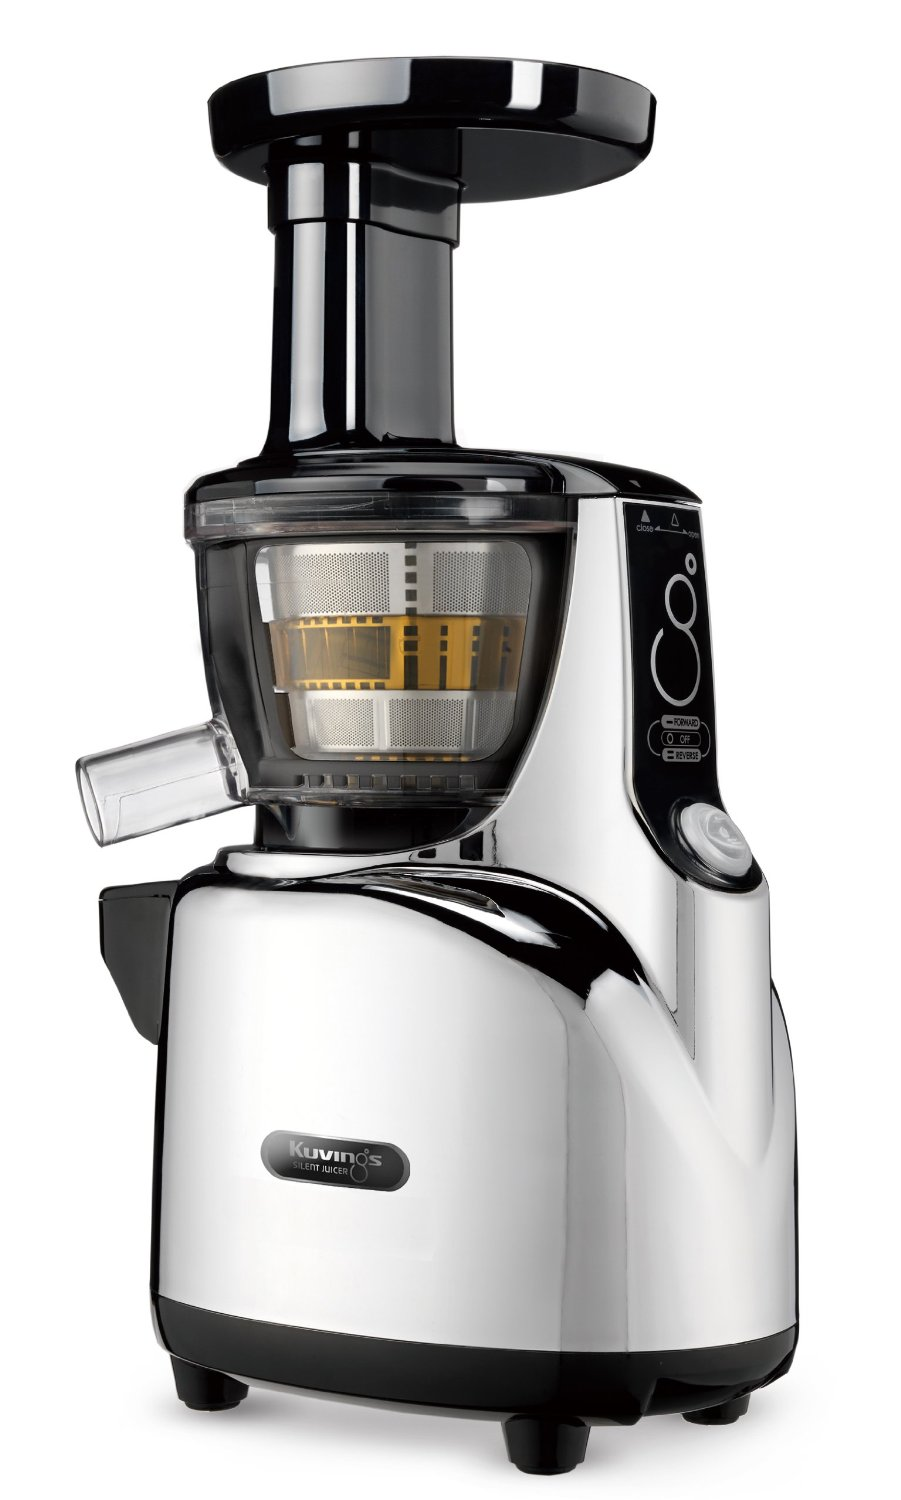 Kuvings Nje 3580u Masticating Slow Juicer : 5 Best Kuvings Juicer Reviews UPDATED: 2018 The Home Savant